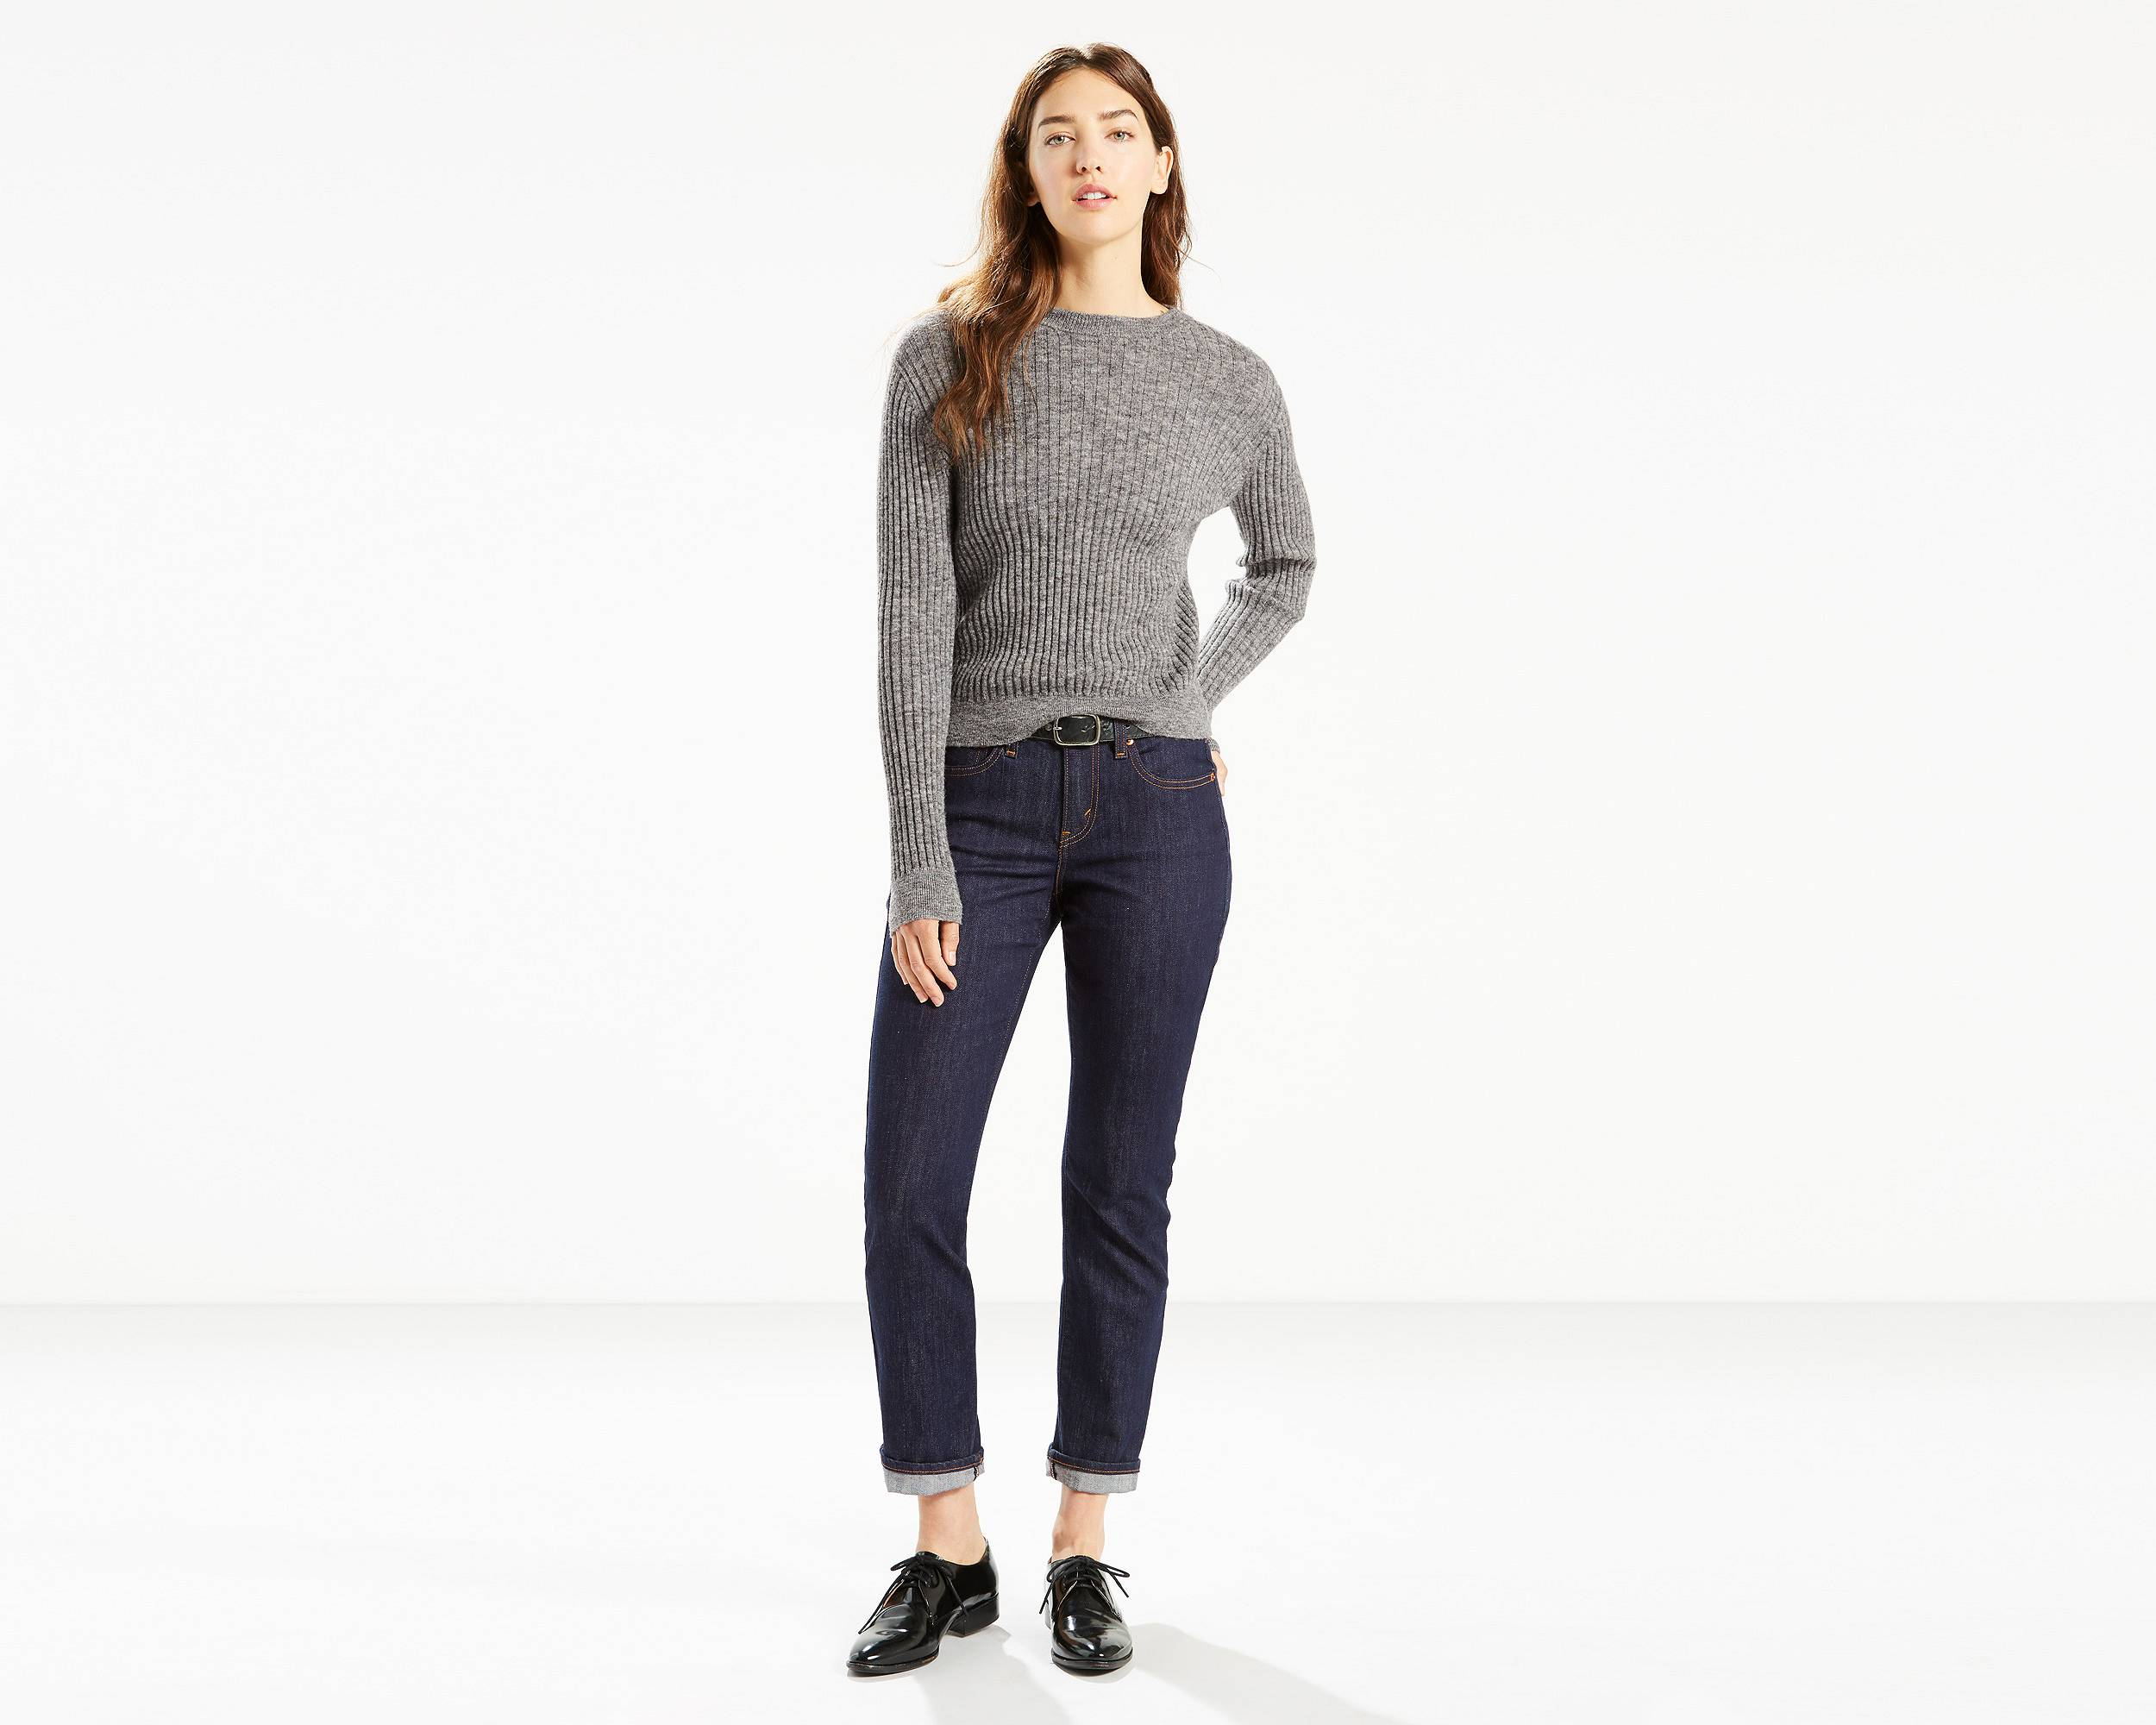 Straight Leg Jeans - Shop Women's Straight Leg Jeans | Levi's®